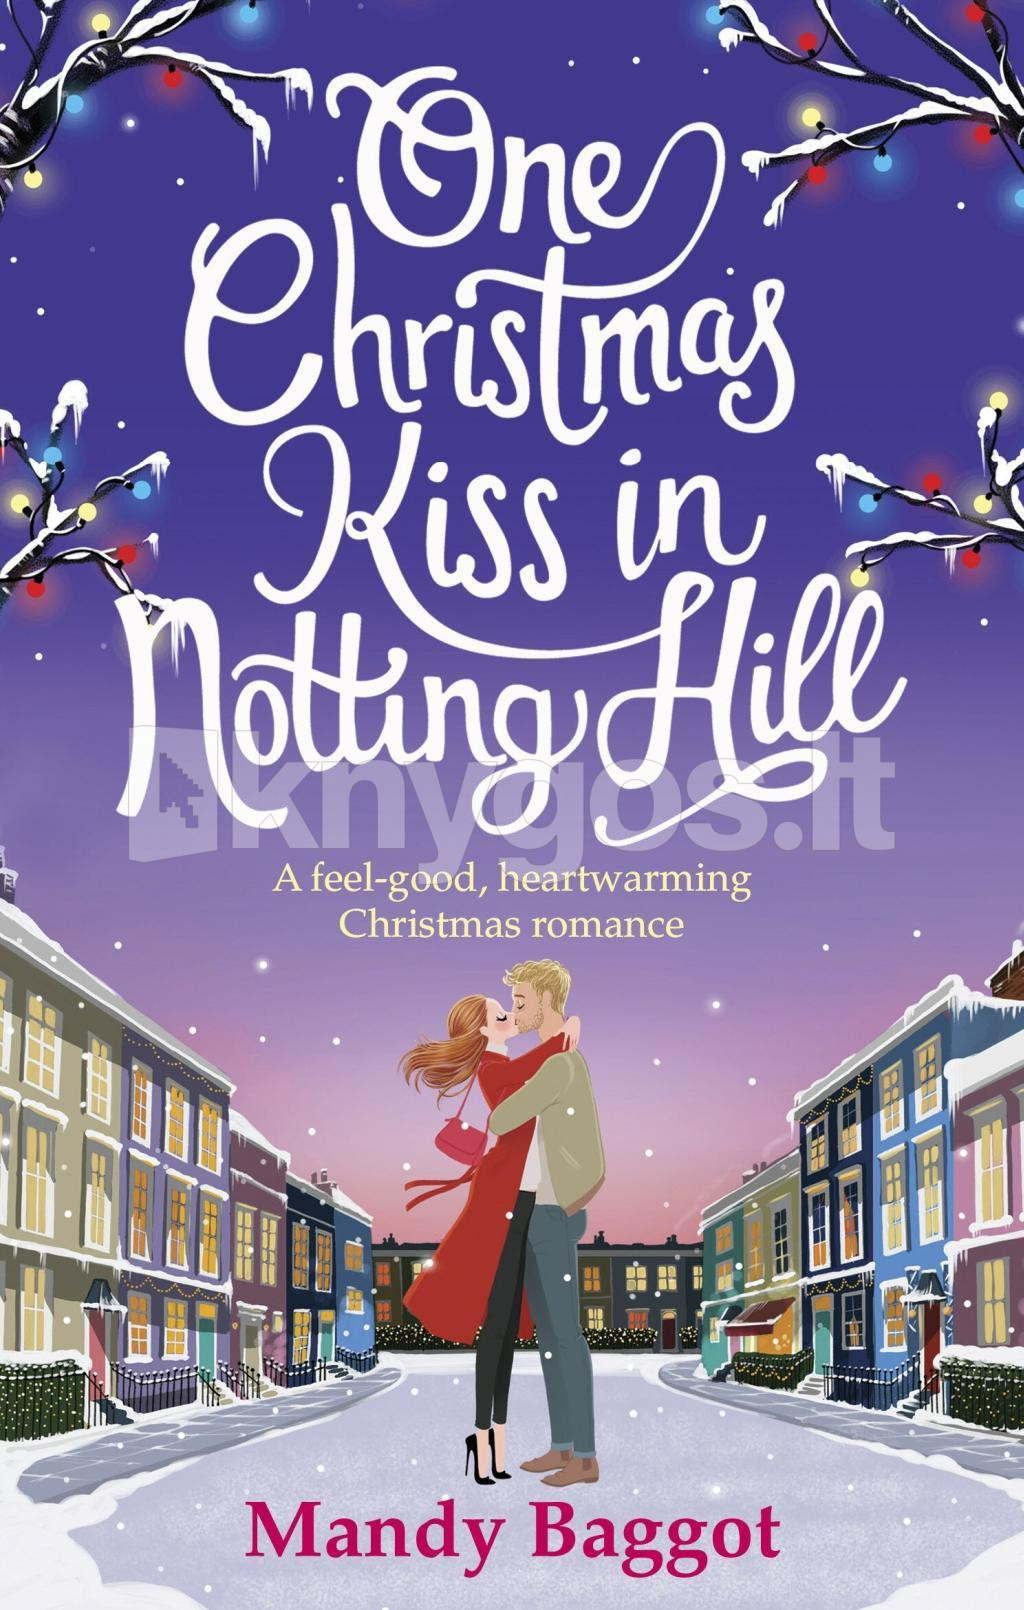 Christmas Kiss 2.Knyga One Christmas Kiss In Notting Hill Knygos Lt